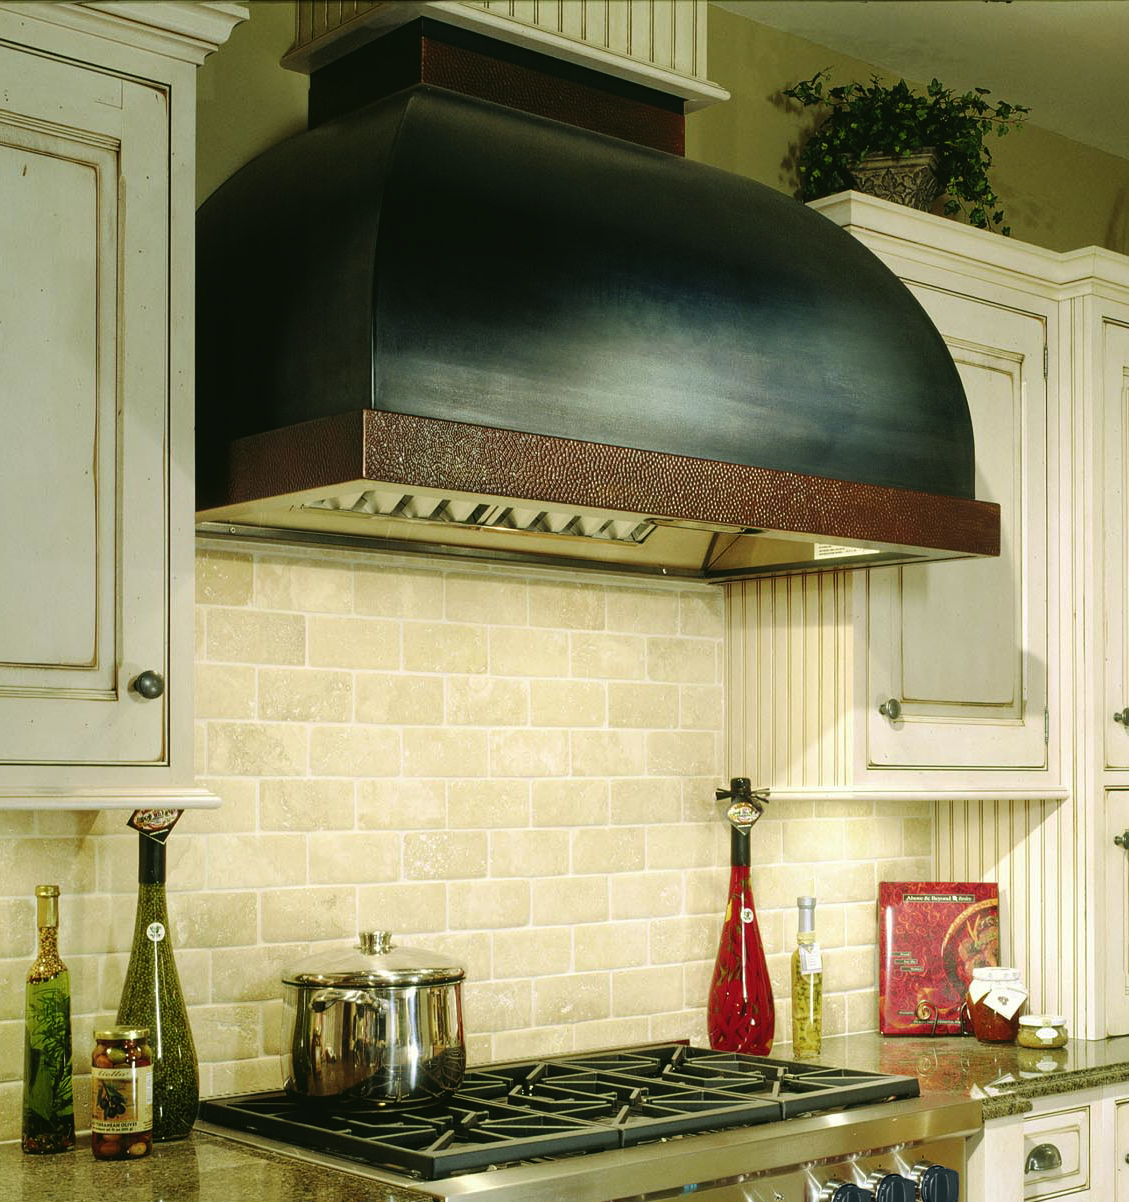 Let Your Kitchen Hood Vent Introducing Luxury Designs And Customizable Styles From Prizer Hoods